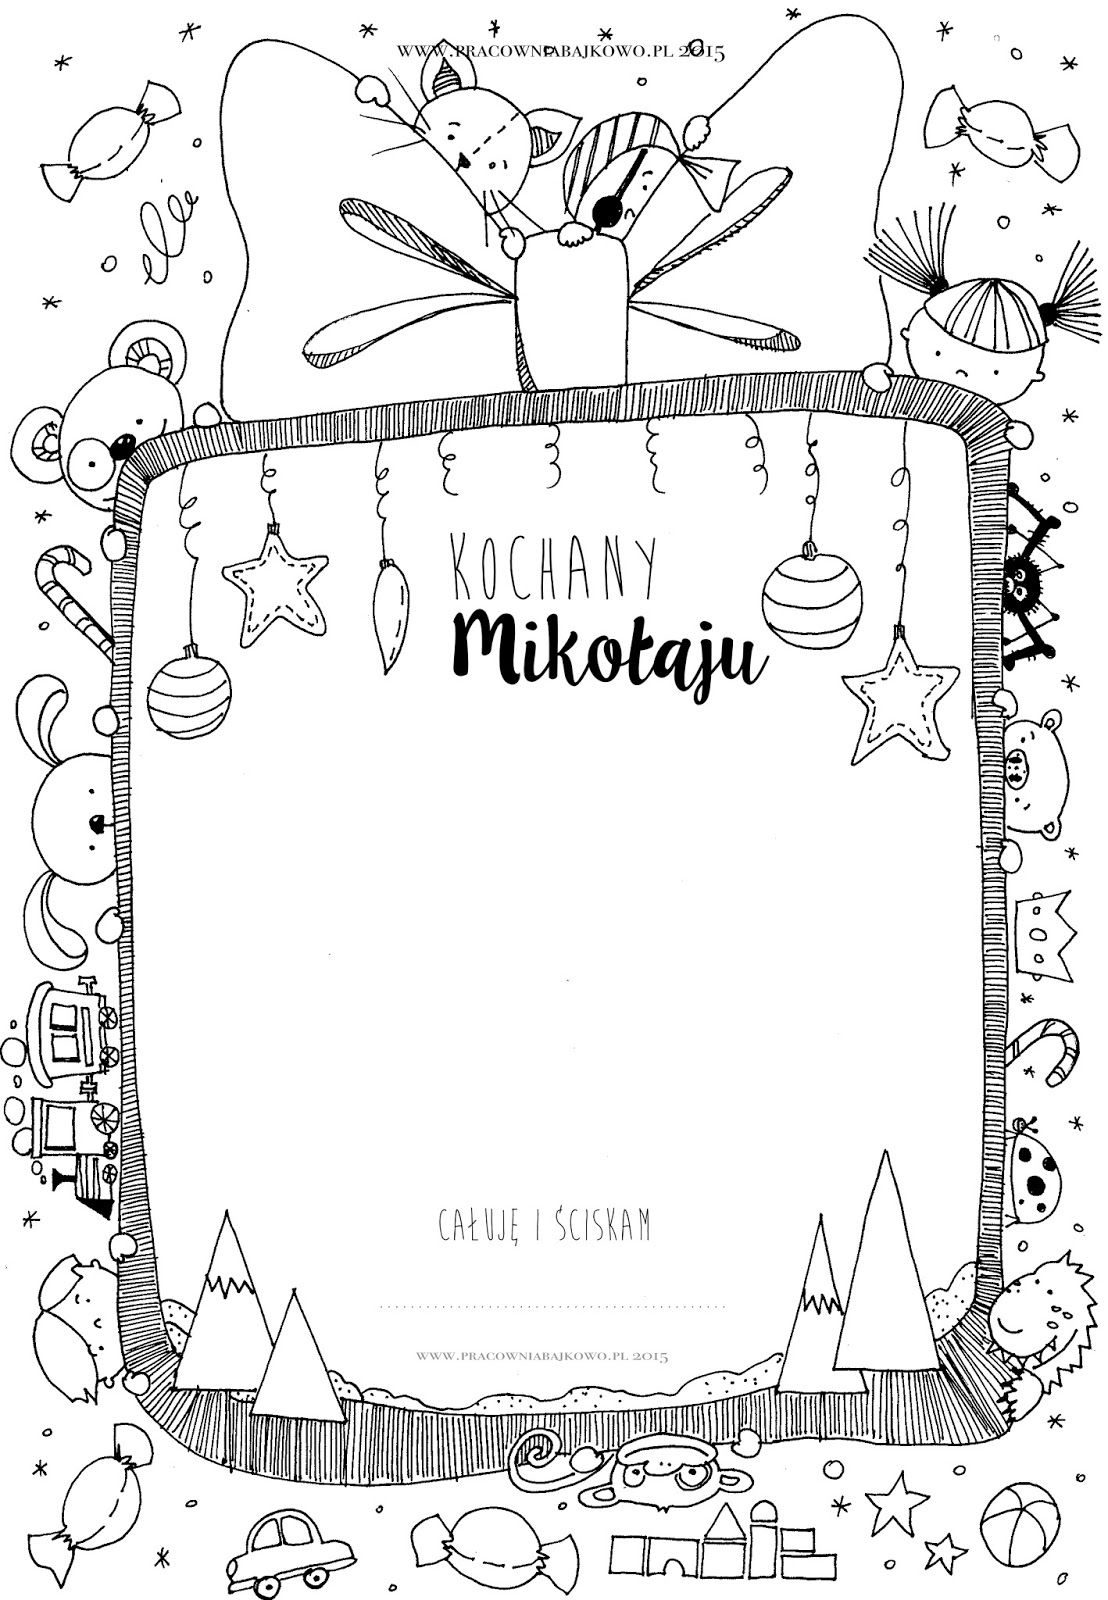 2015 List Do Mikolaja Bw Jpg 1108 1600 Christmas Crafts For Toddlers Colouring Pages Christmas Diy